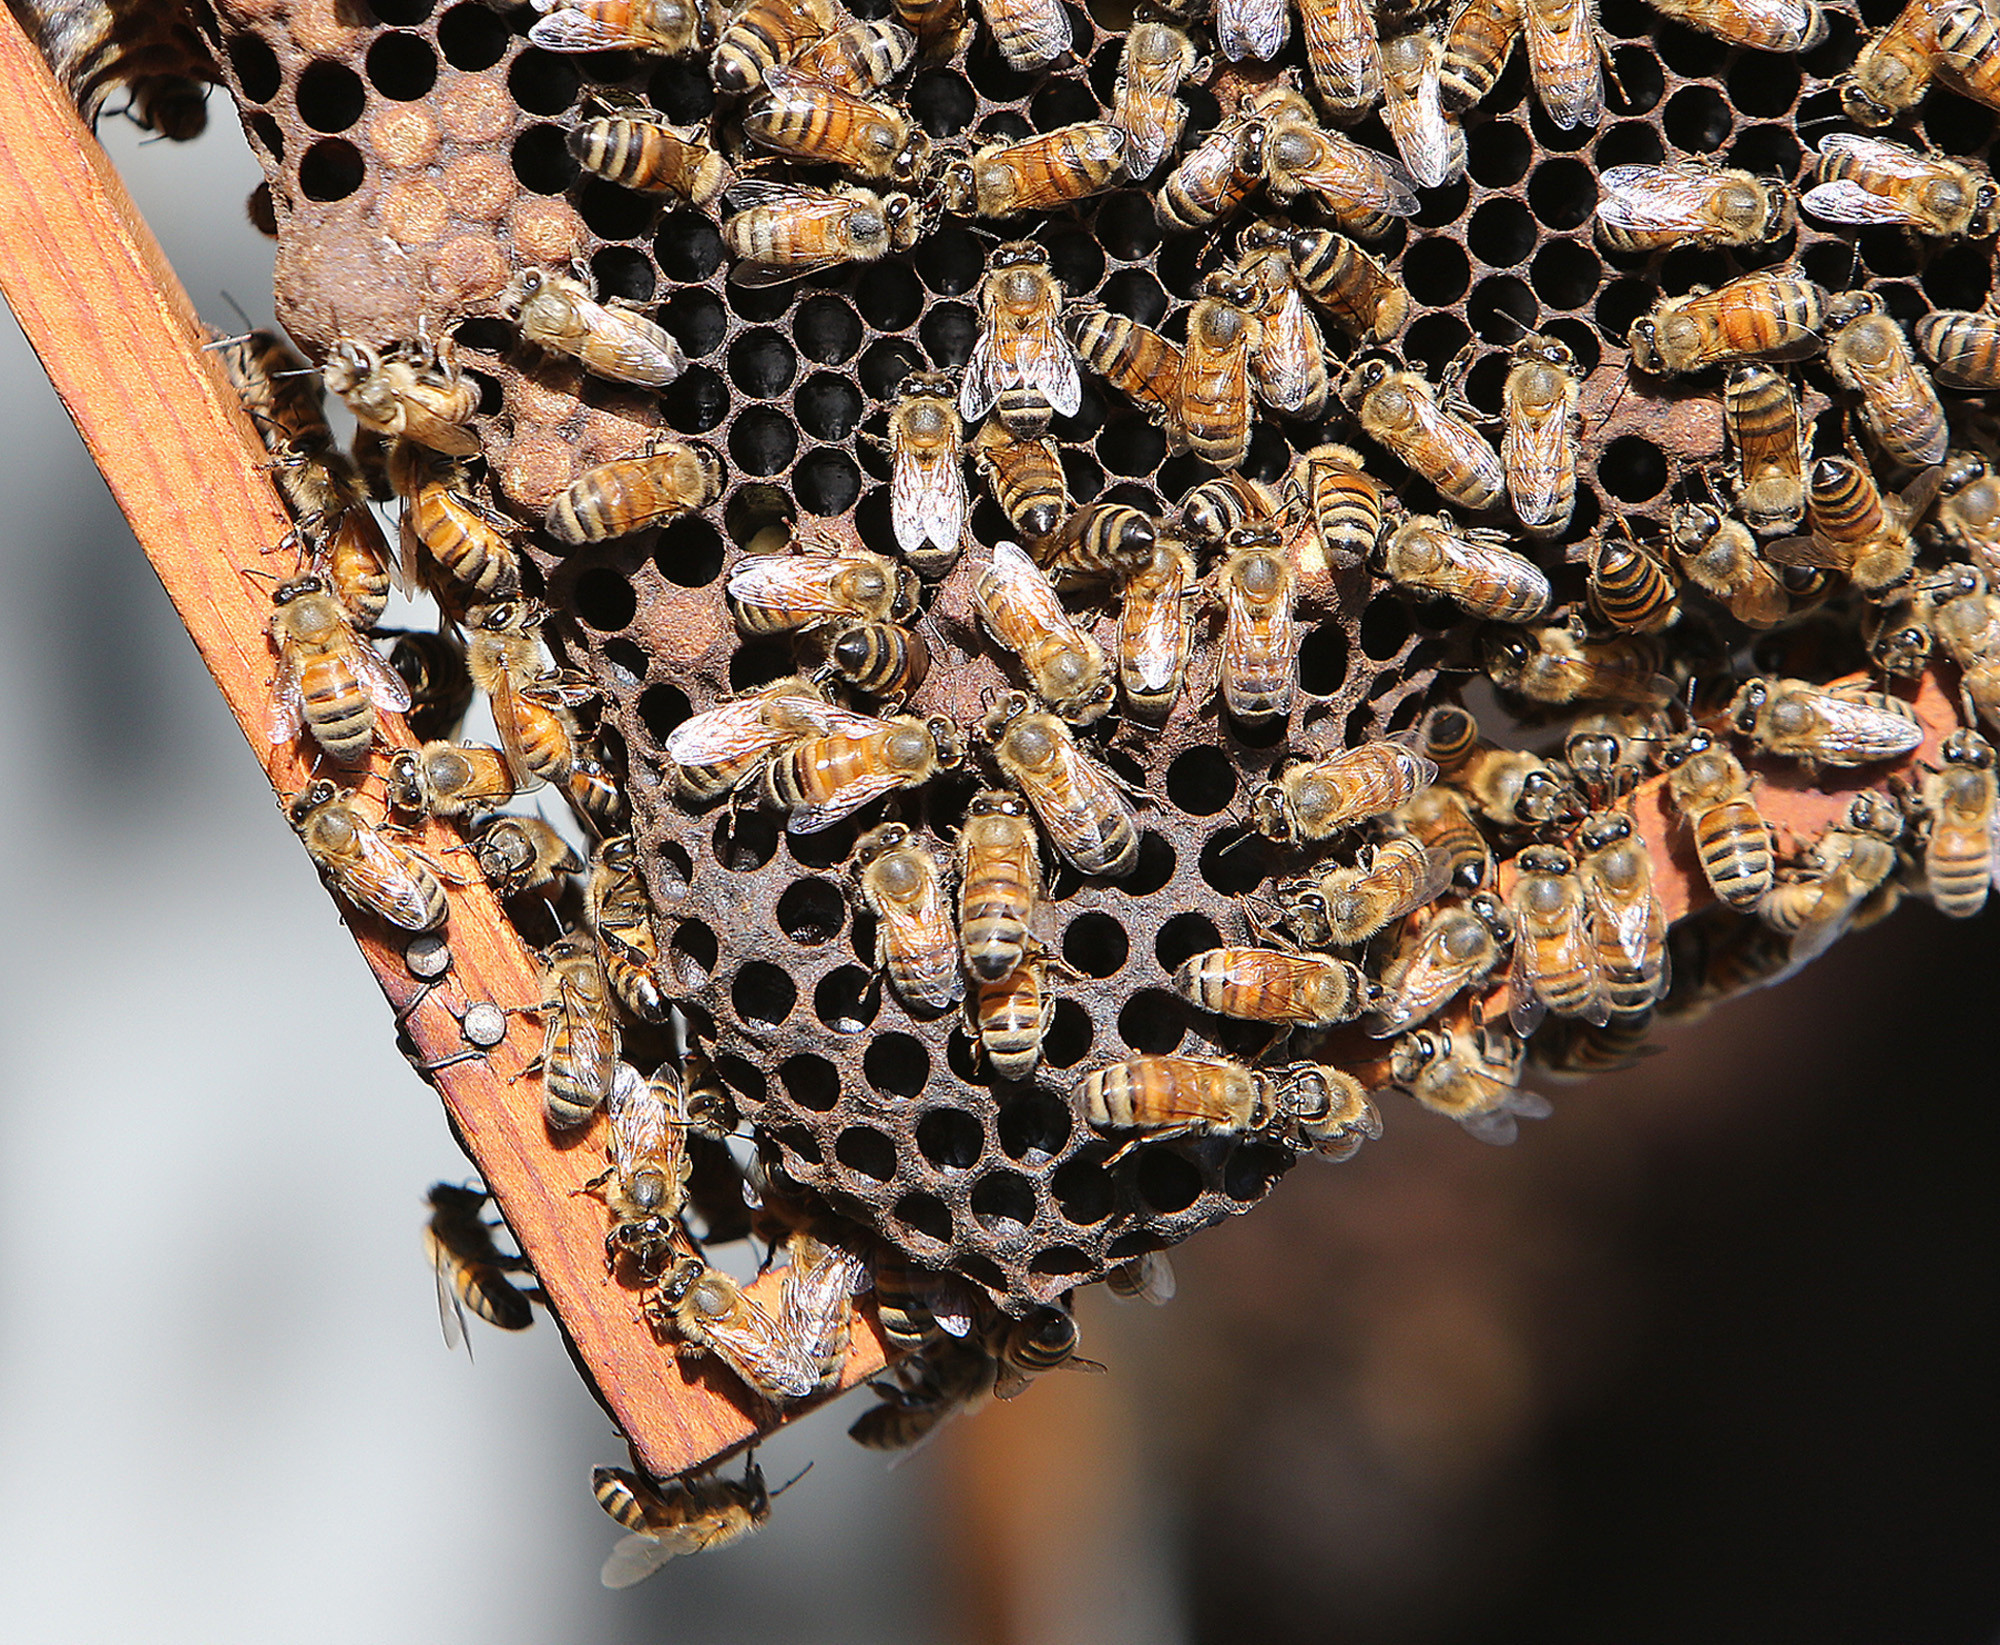 More bad news for honeybees: Beekeepers lost nearly half their colonies in past year